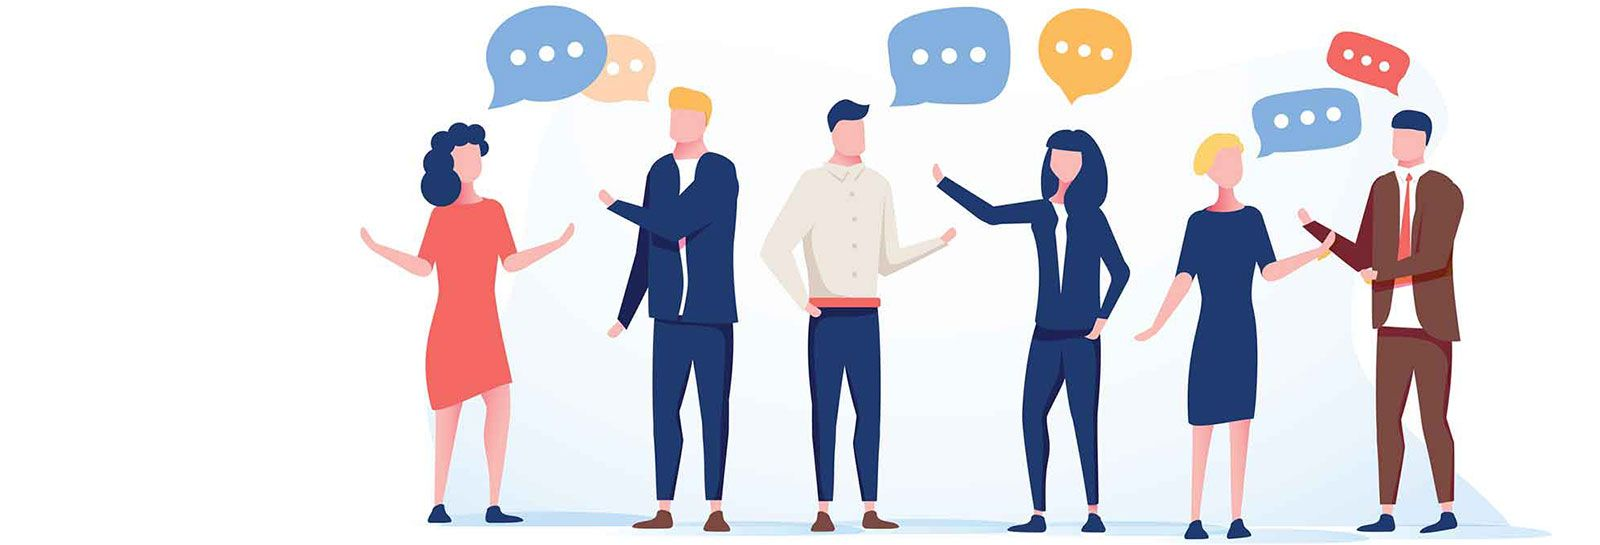 Six people having discussion banner image